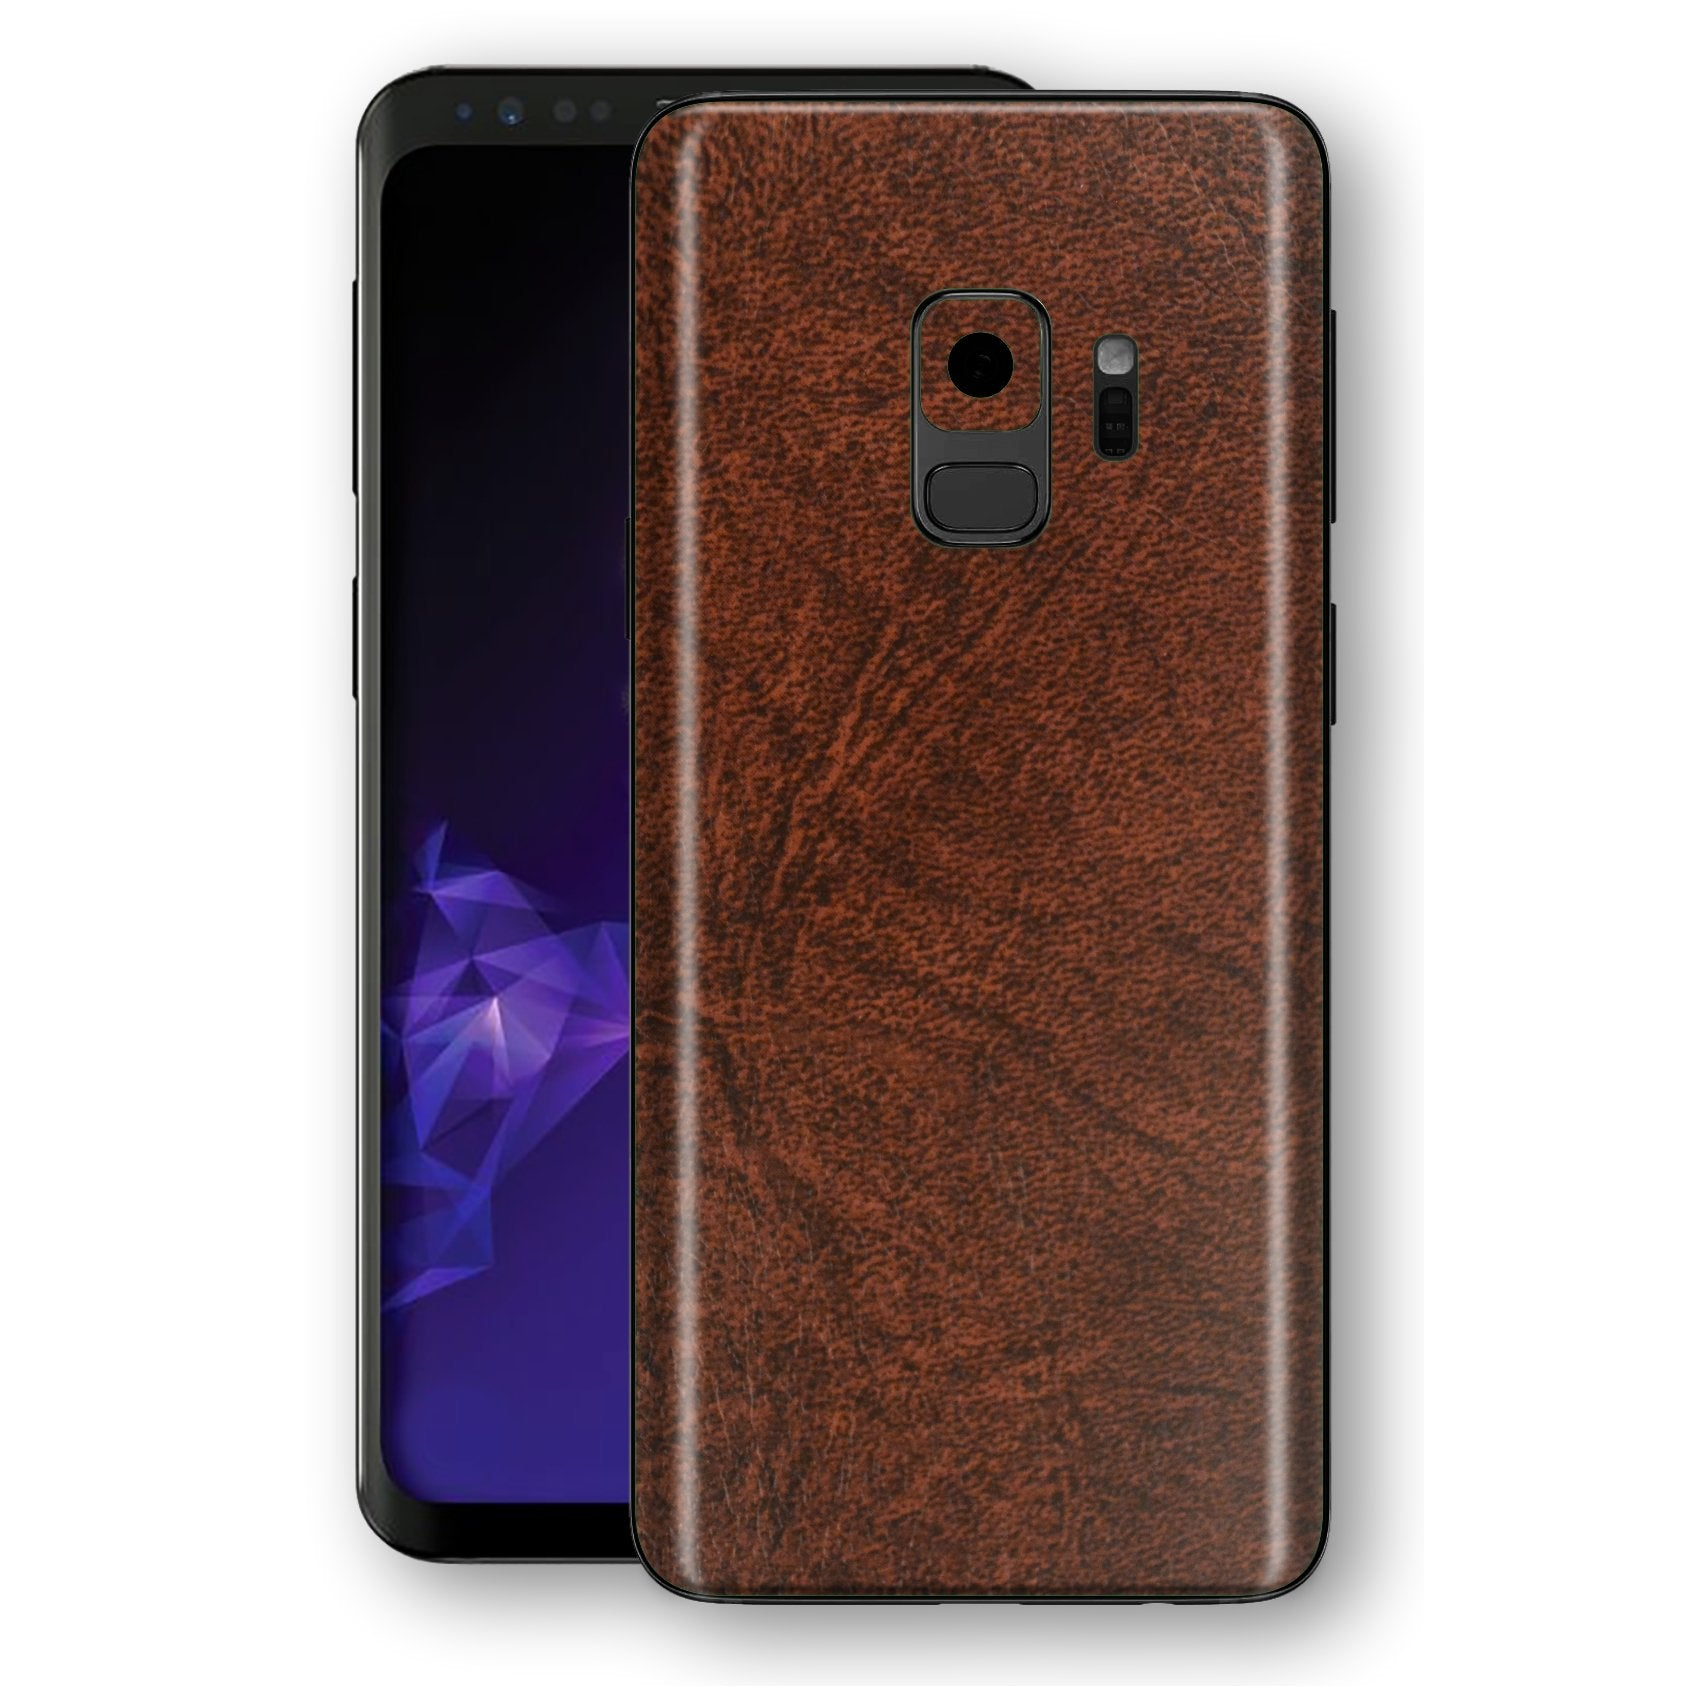 Samsung GALAXY S9 Luxuria BROWN Leather Skin Wrap Decal Protector | EasySkinz